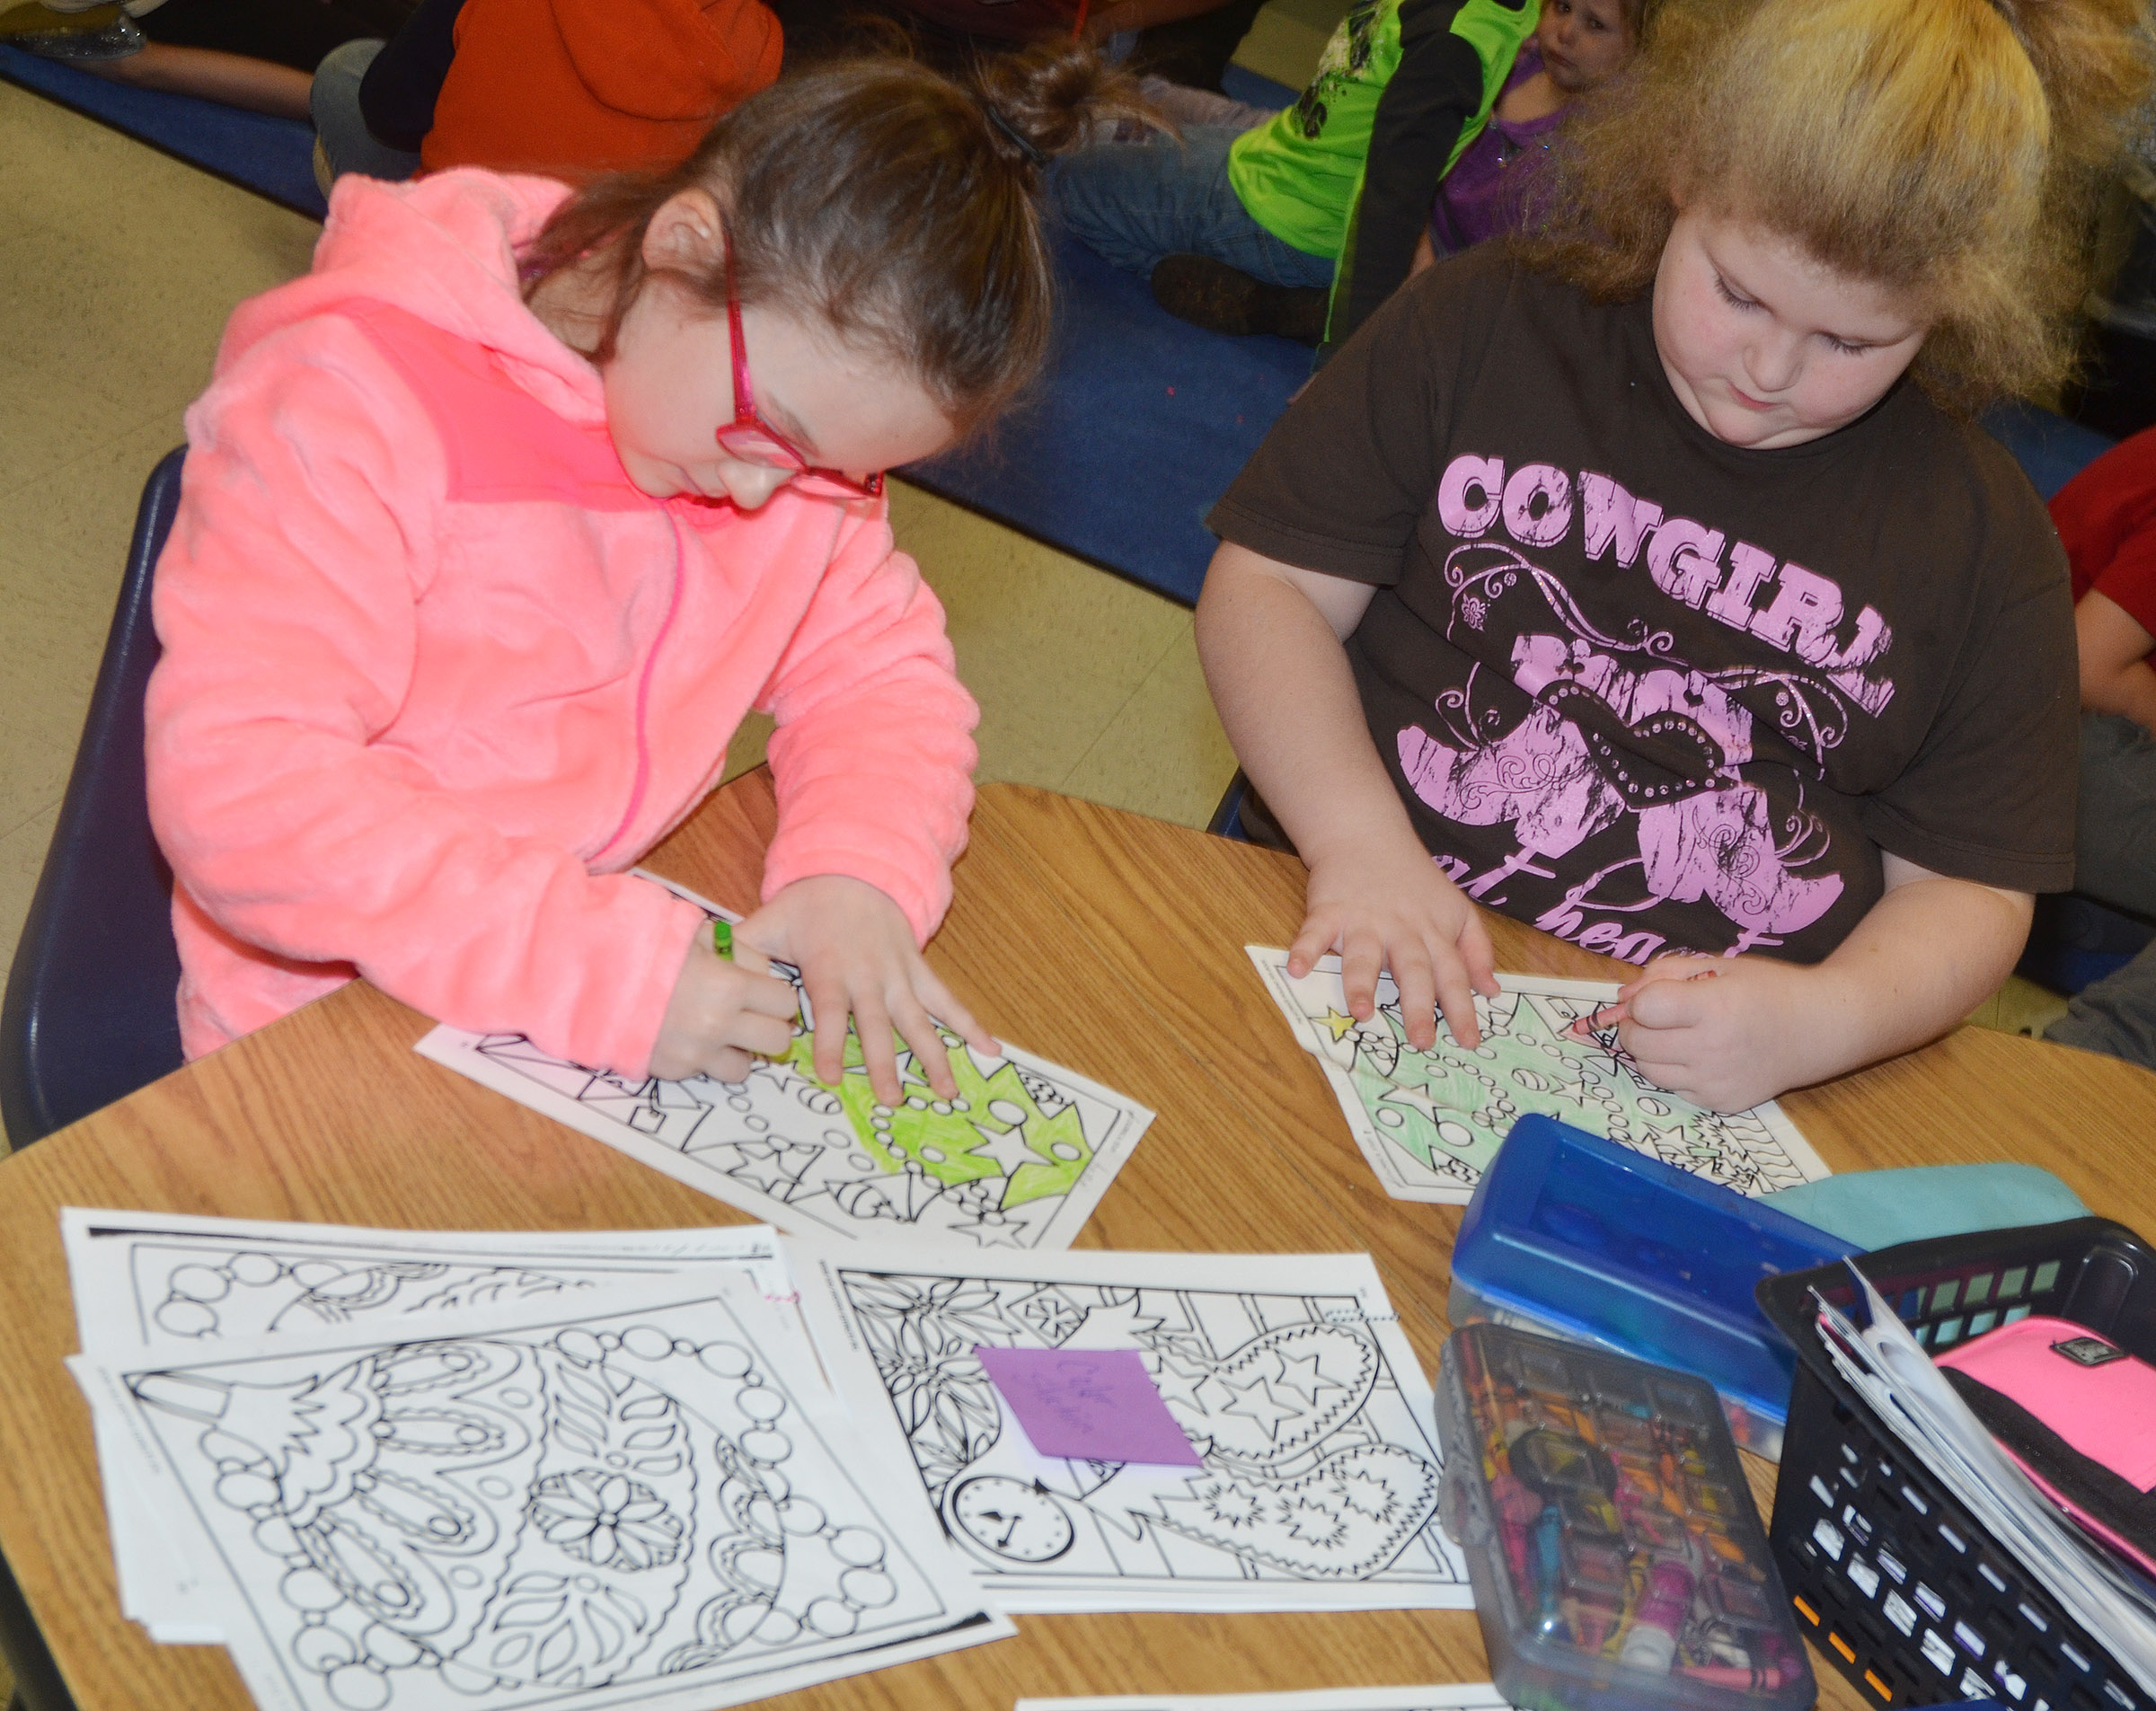 CES second-graders Anna Keith, at left, and Elizabeth Foster color.